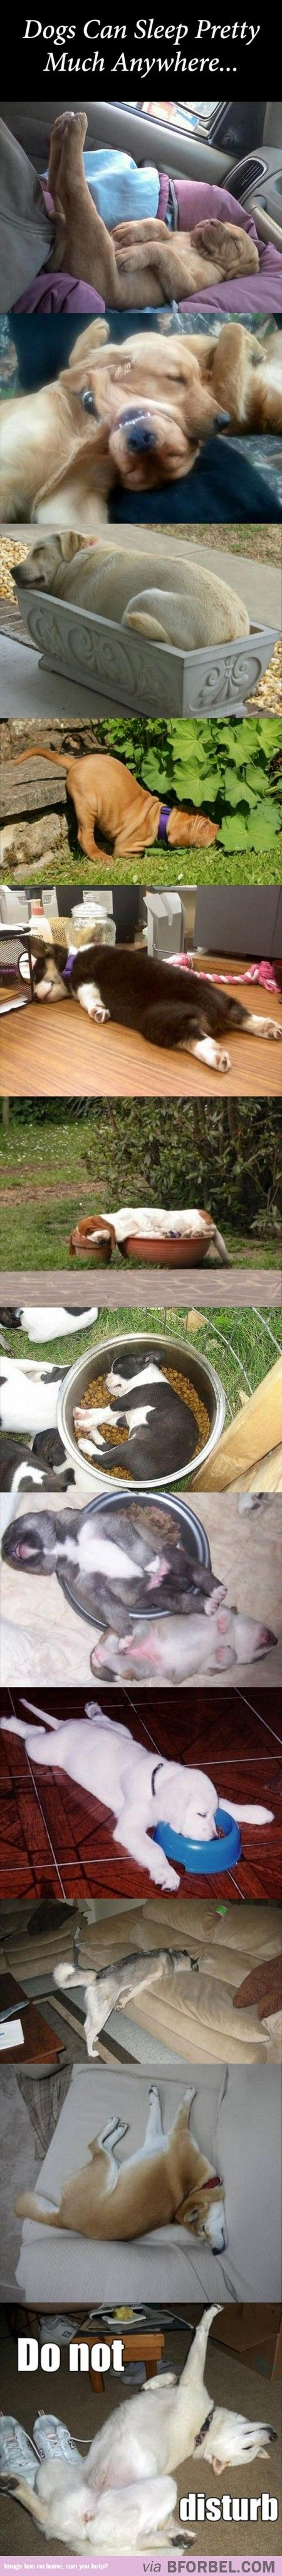 I love dogs: Funny Animals, Puppy Dogs, Dog Sleeping, Dogs Sleeping Funny, Puppys, 12 Dogs, Friend